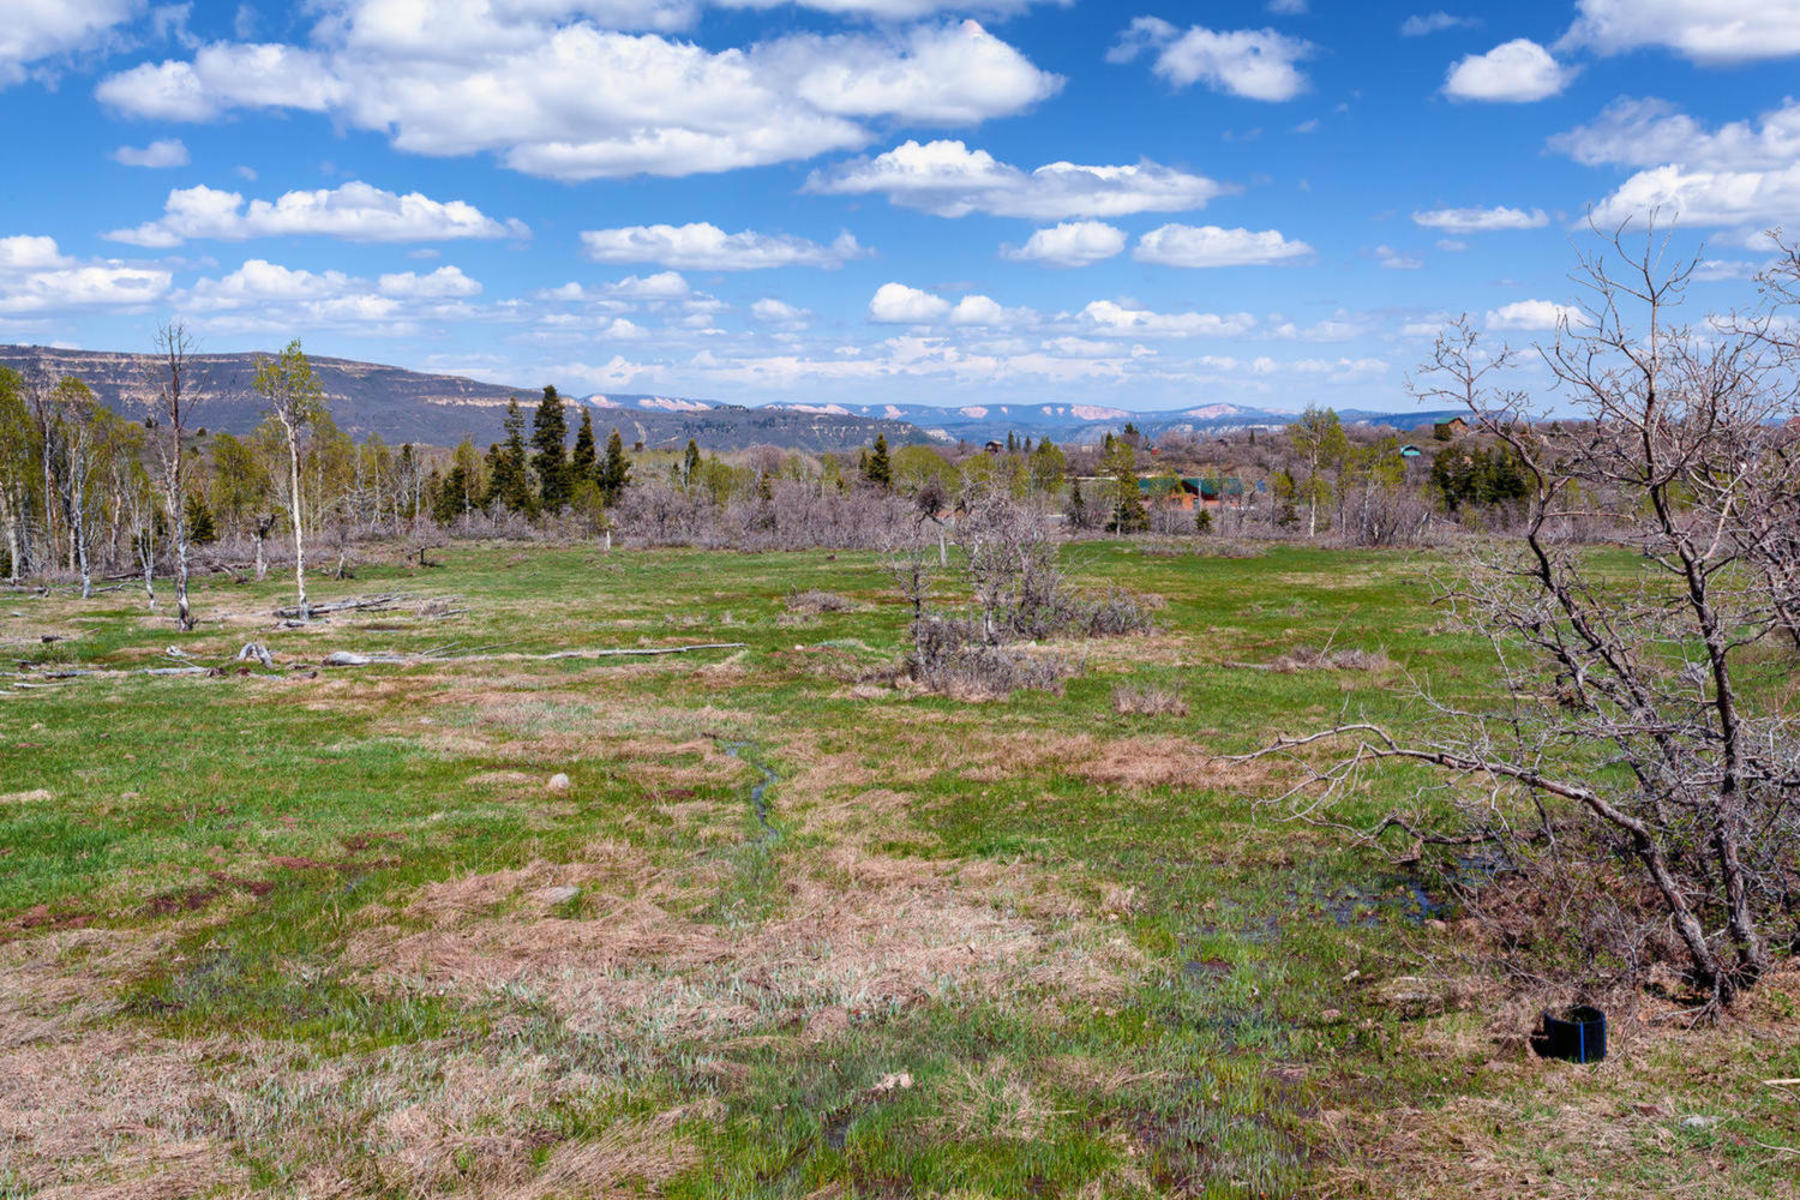 Land for Sale at Amazing Mountain View Lot in Whispering Pines Whispering Pines, Lot #62 Virgin, Utah 84779 United States